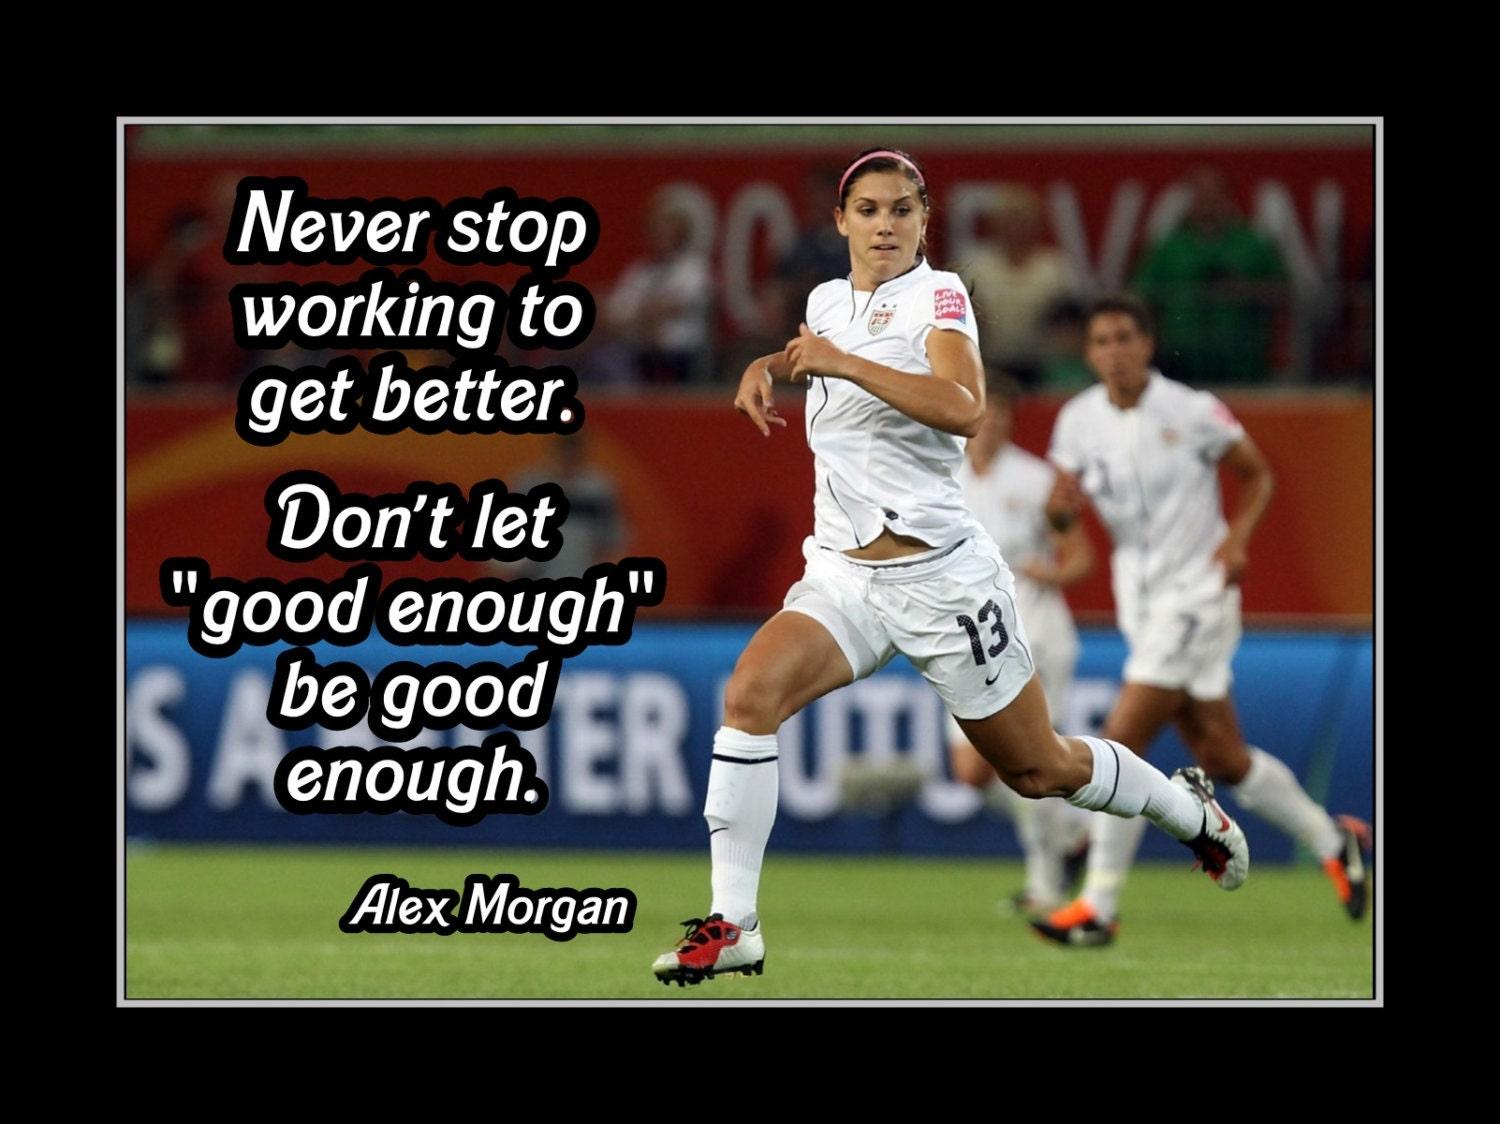 alex morgan filles football poster de motivation citation